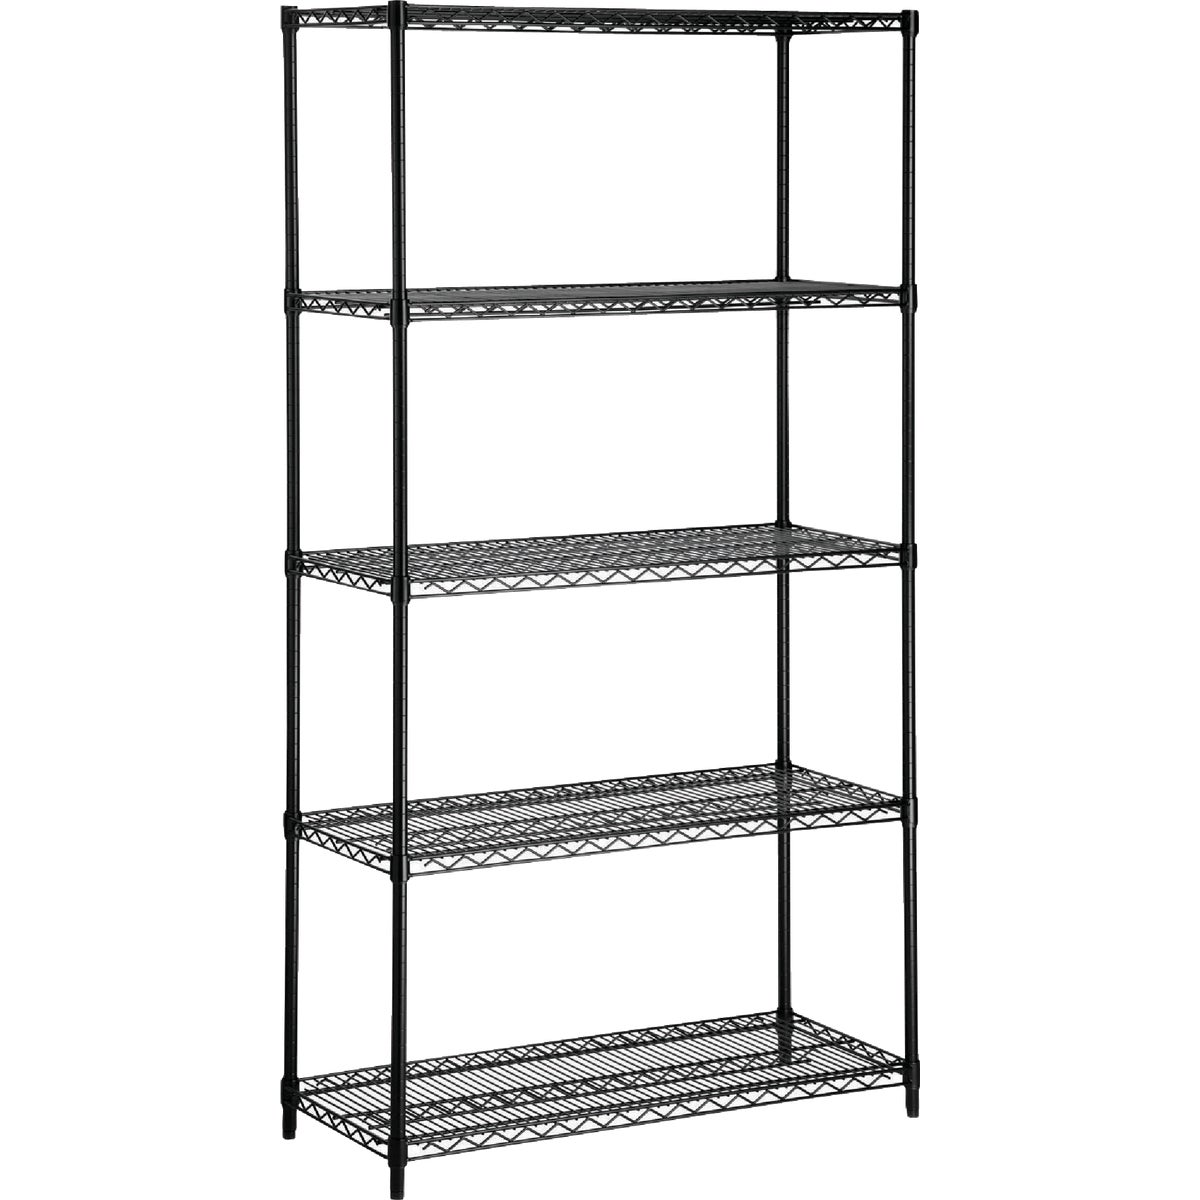 BLK 5 TIER HVY DTY SHELF - SHF-01440 by Honey Can Do